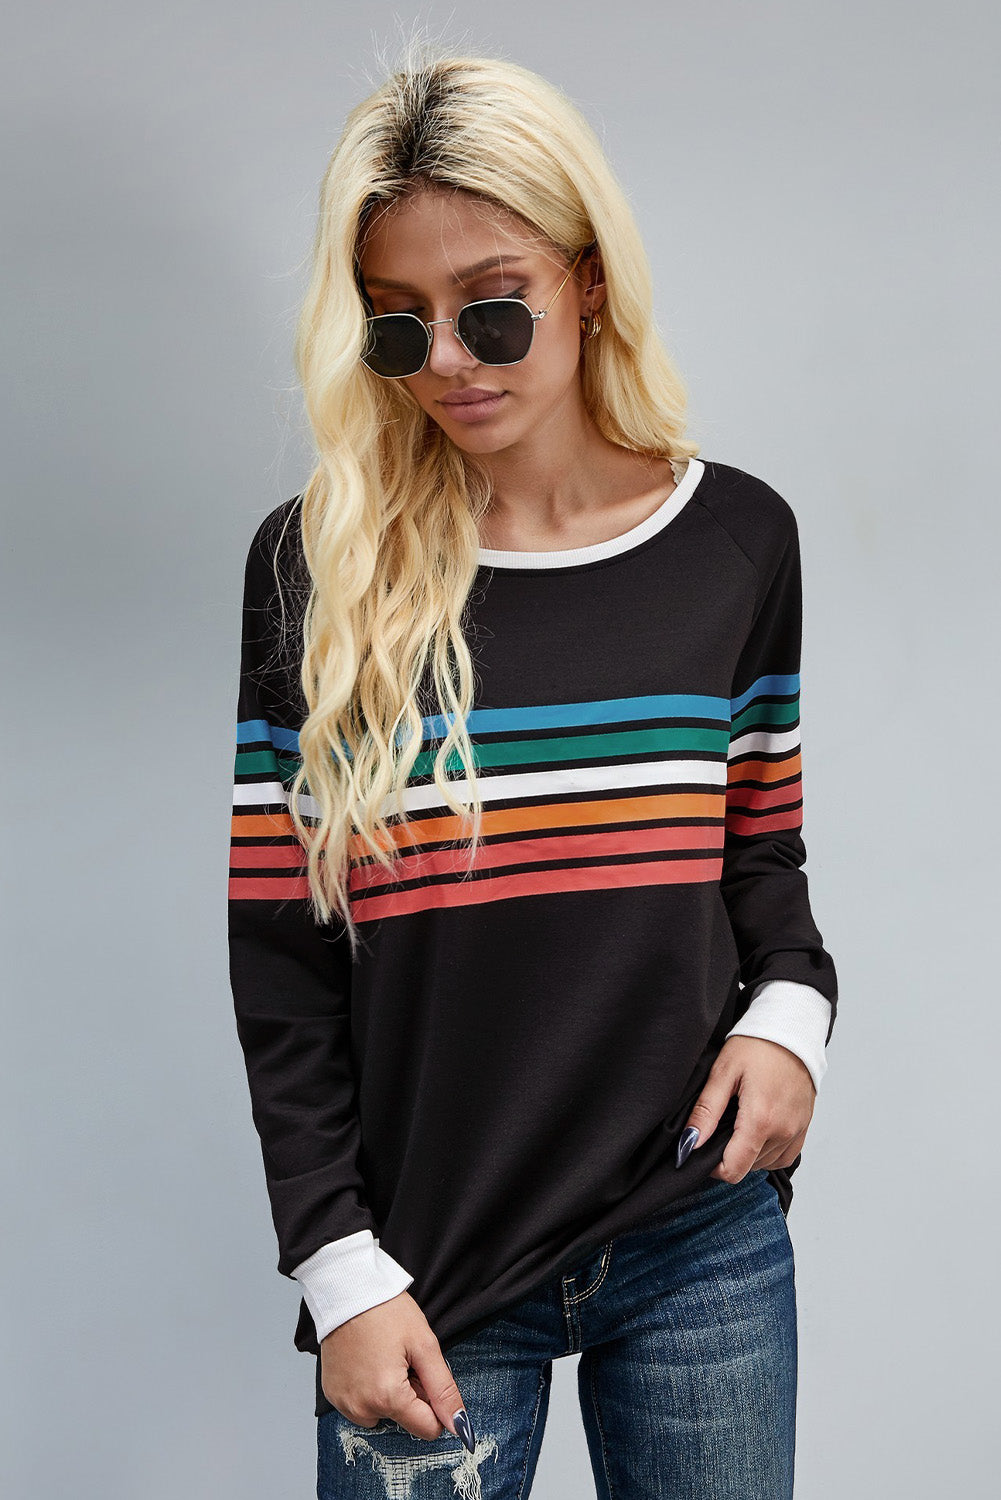 Rainbow Print Black Long Sleeve Top Long Sleeve Tops Discount Designer Fashion Clothes Shoes Bags Women Men Kids Children Black Owned Business